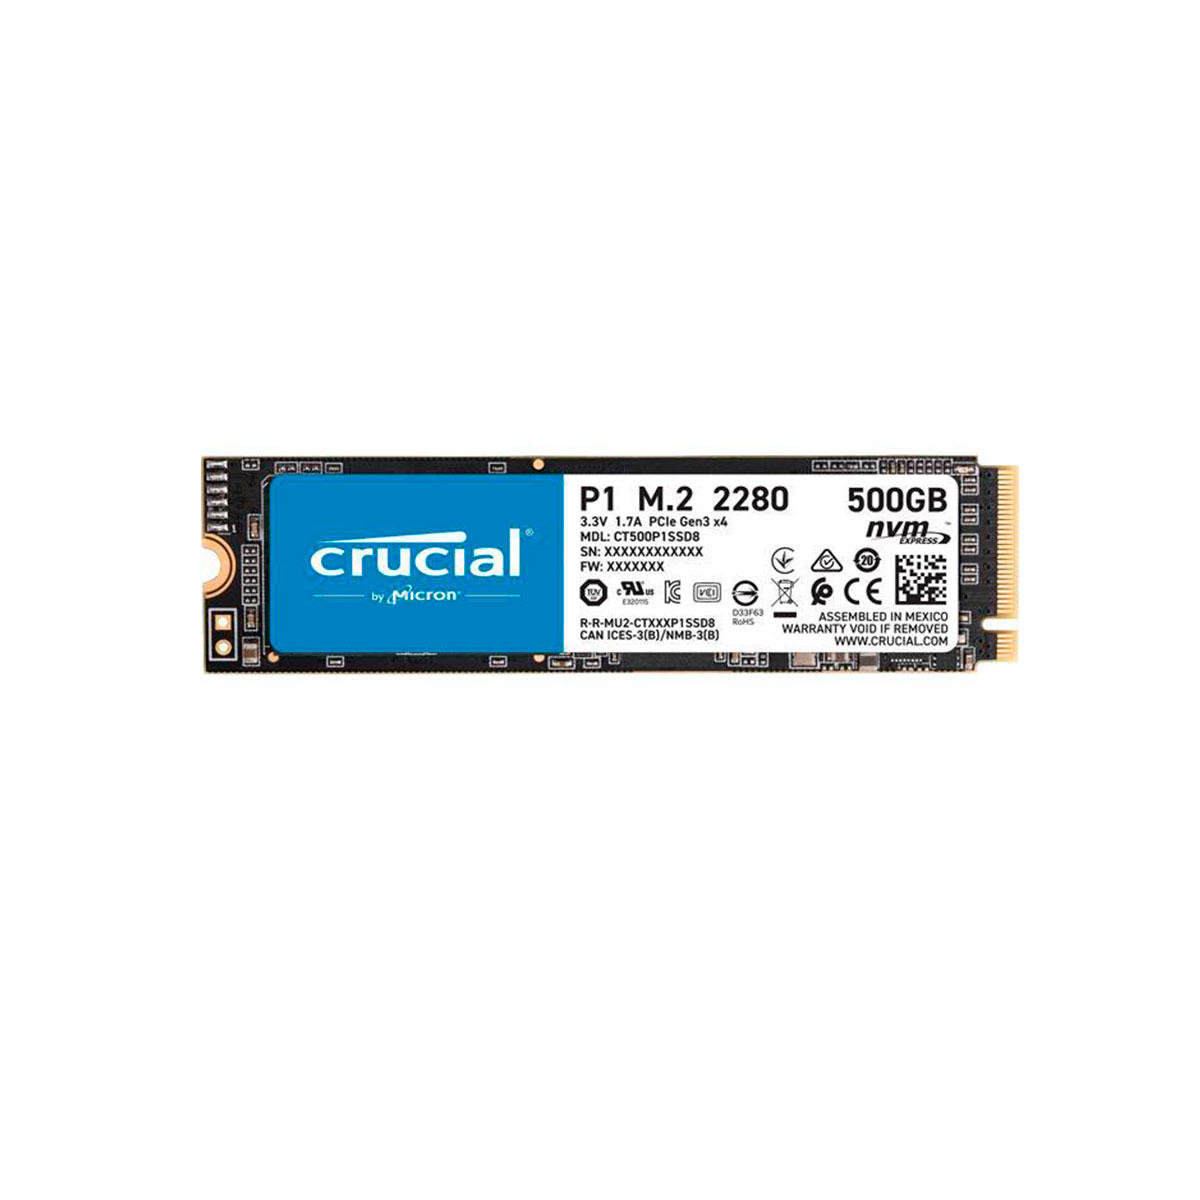 Disco duro 500GB Interno SSD Crucial M2 3D NAND NVME CT500P1SSD8